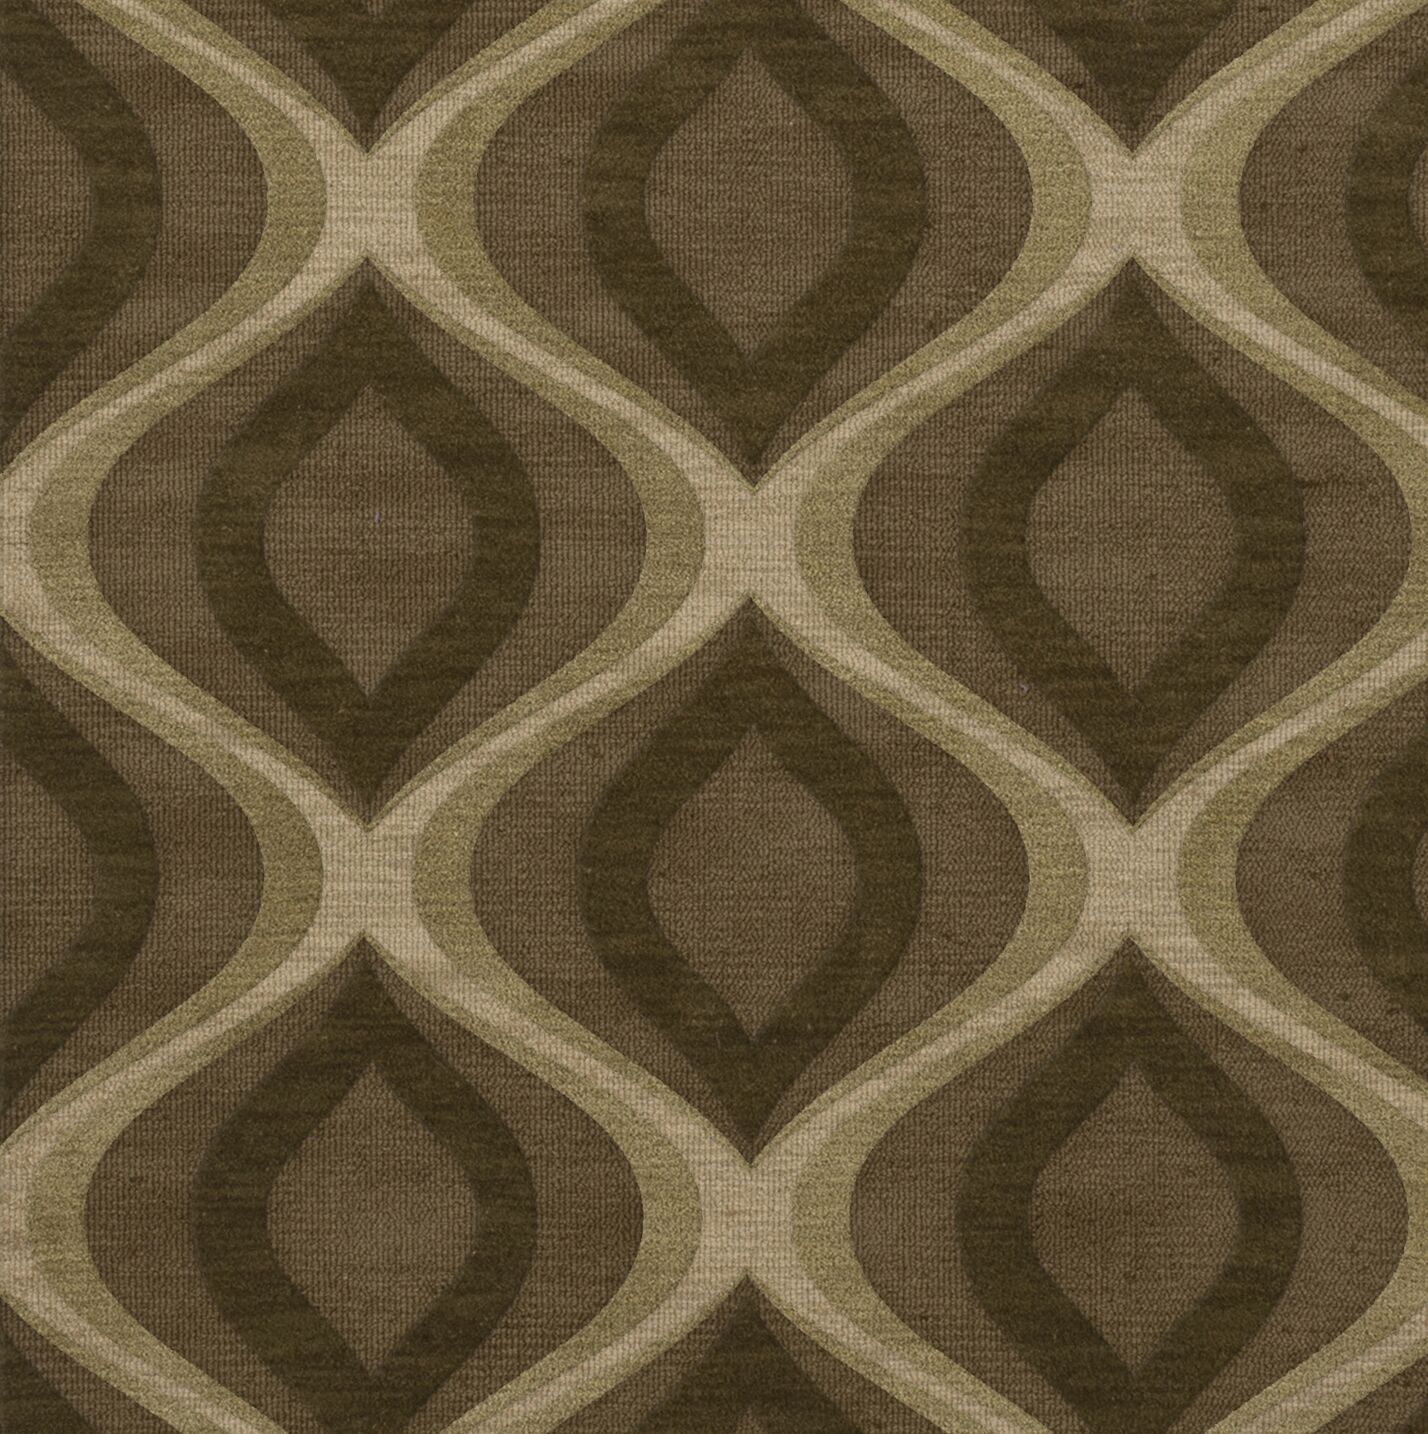 Estelle Wool Oasis Area Rug Rug Size: Square 4'